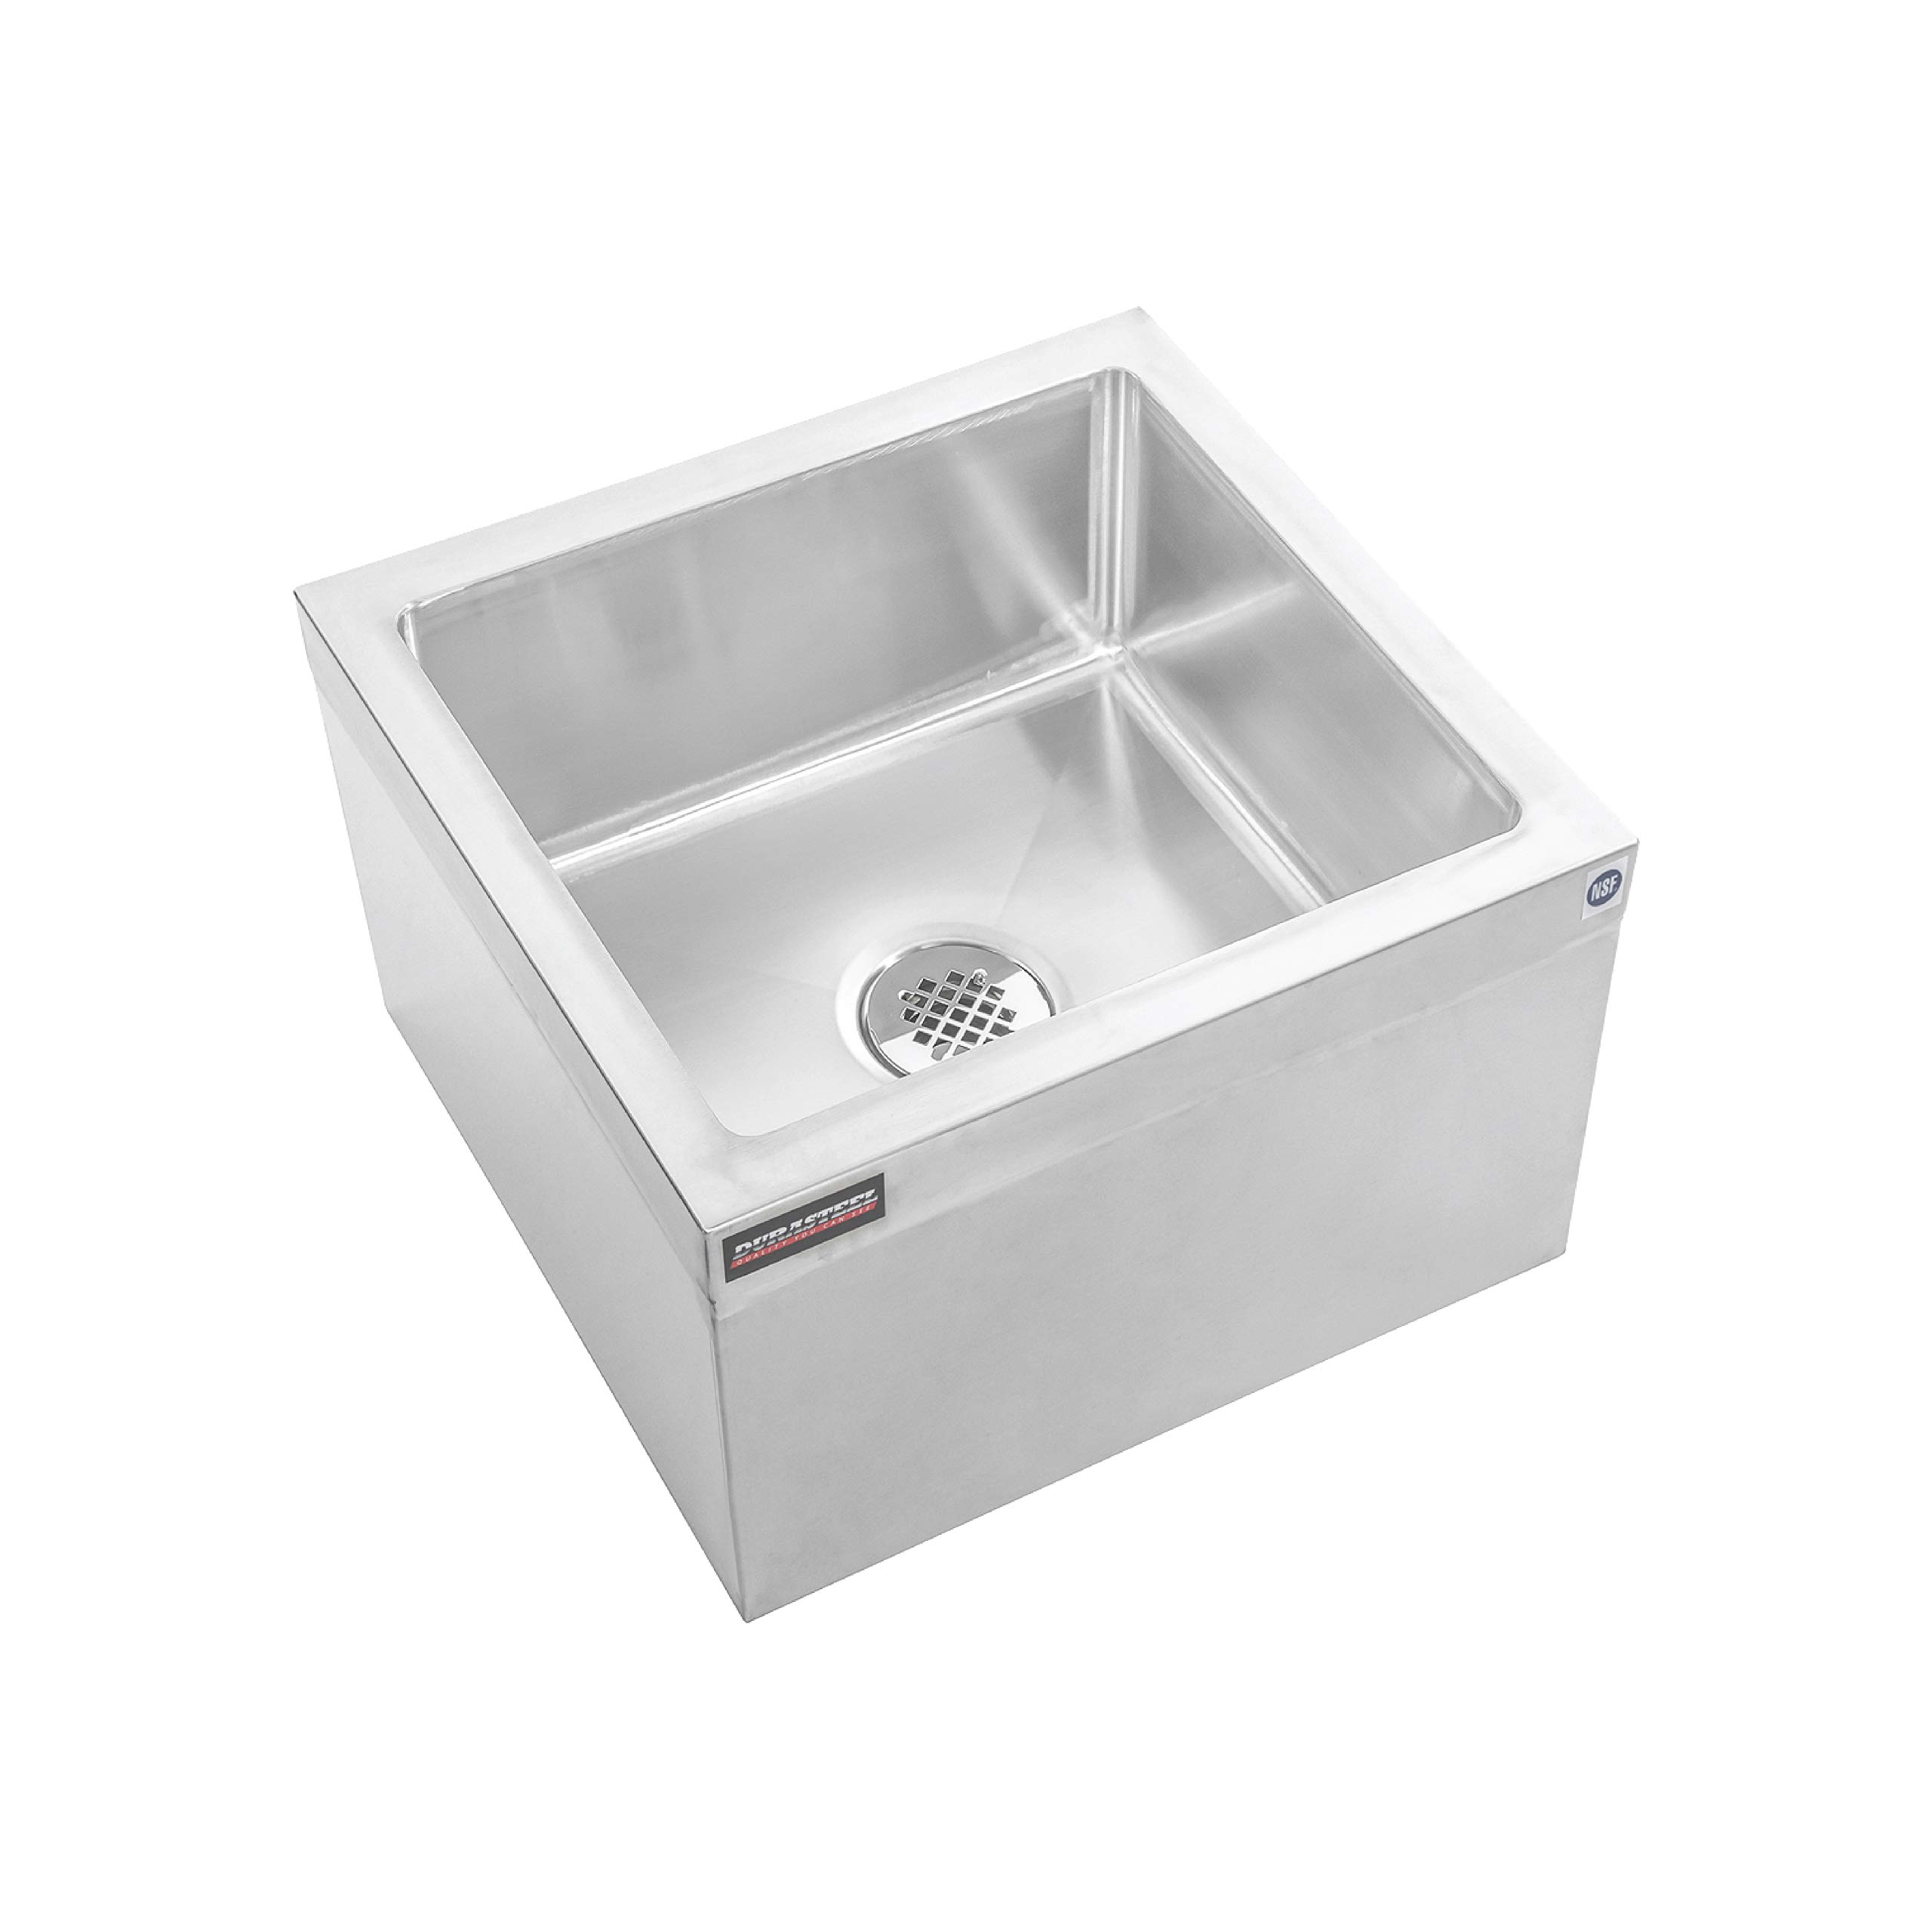 Durasteel Stainless Steel Floor Mount Mop Sink Basin With Sink Drainage Strainer Nsf Certified 24 W X 24 L X 13 H Commercial Kitchen